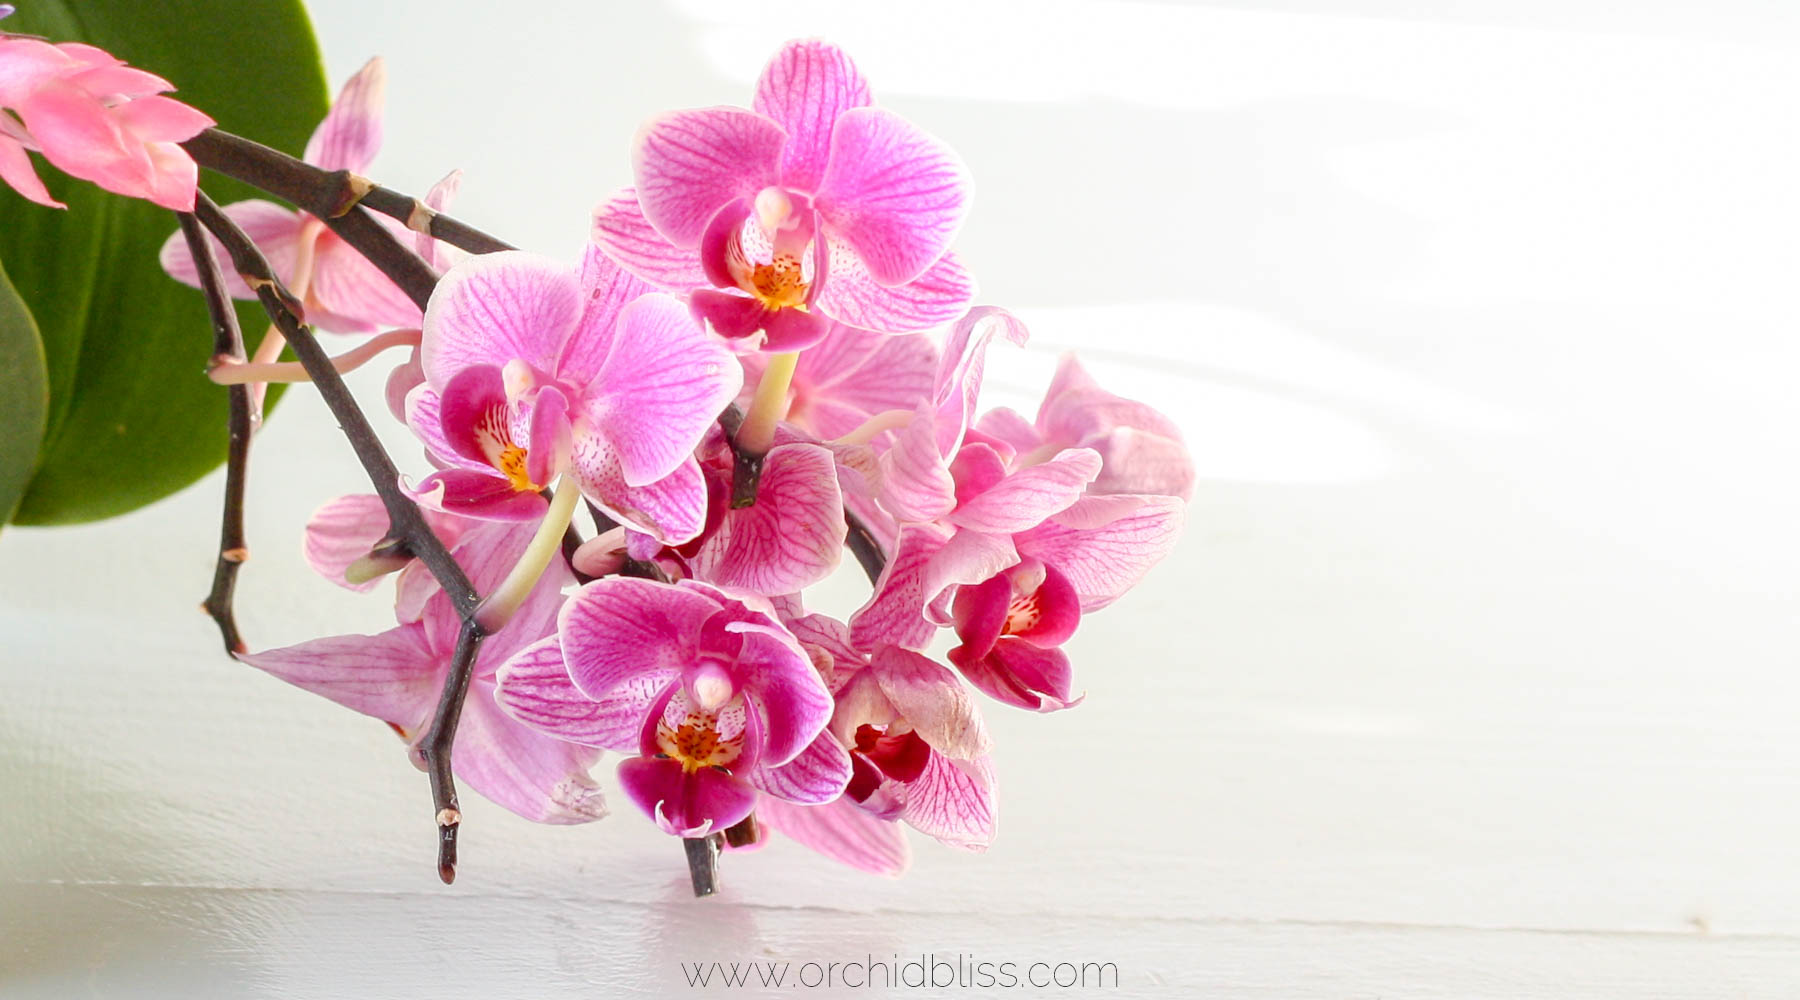 back to school - orchids